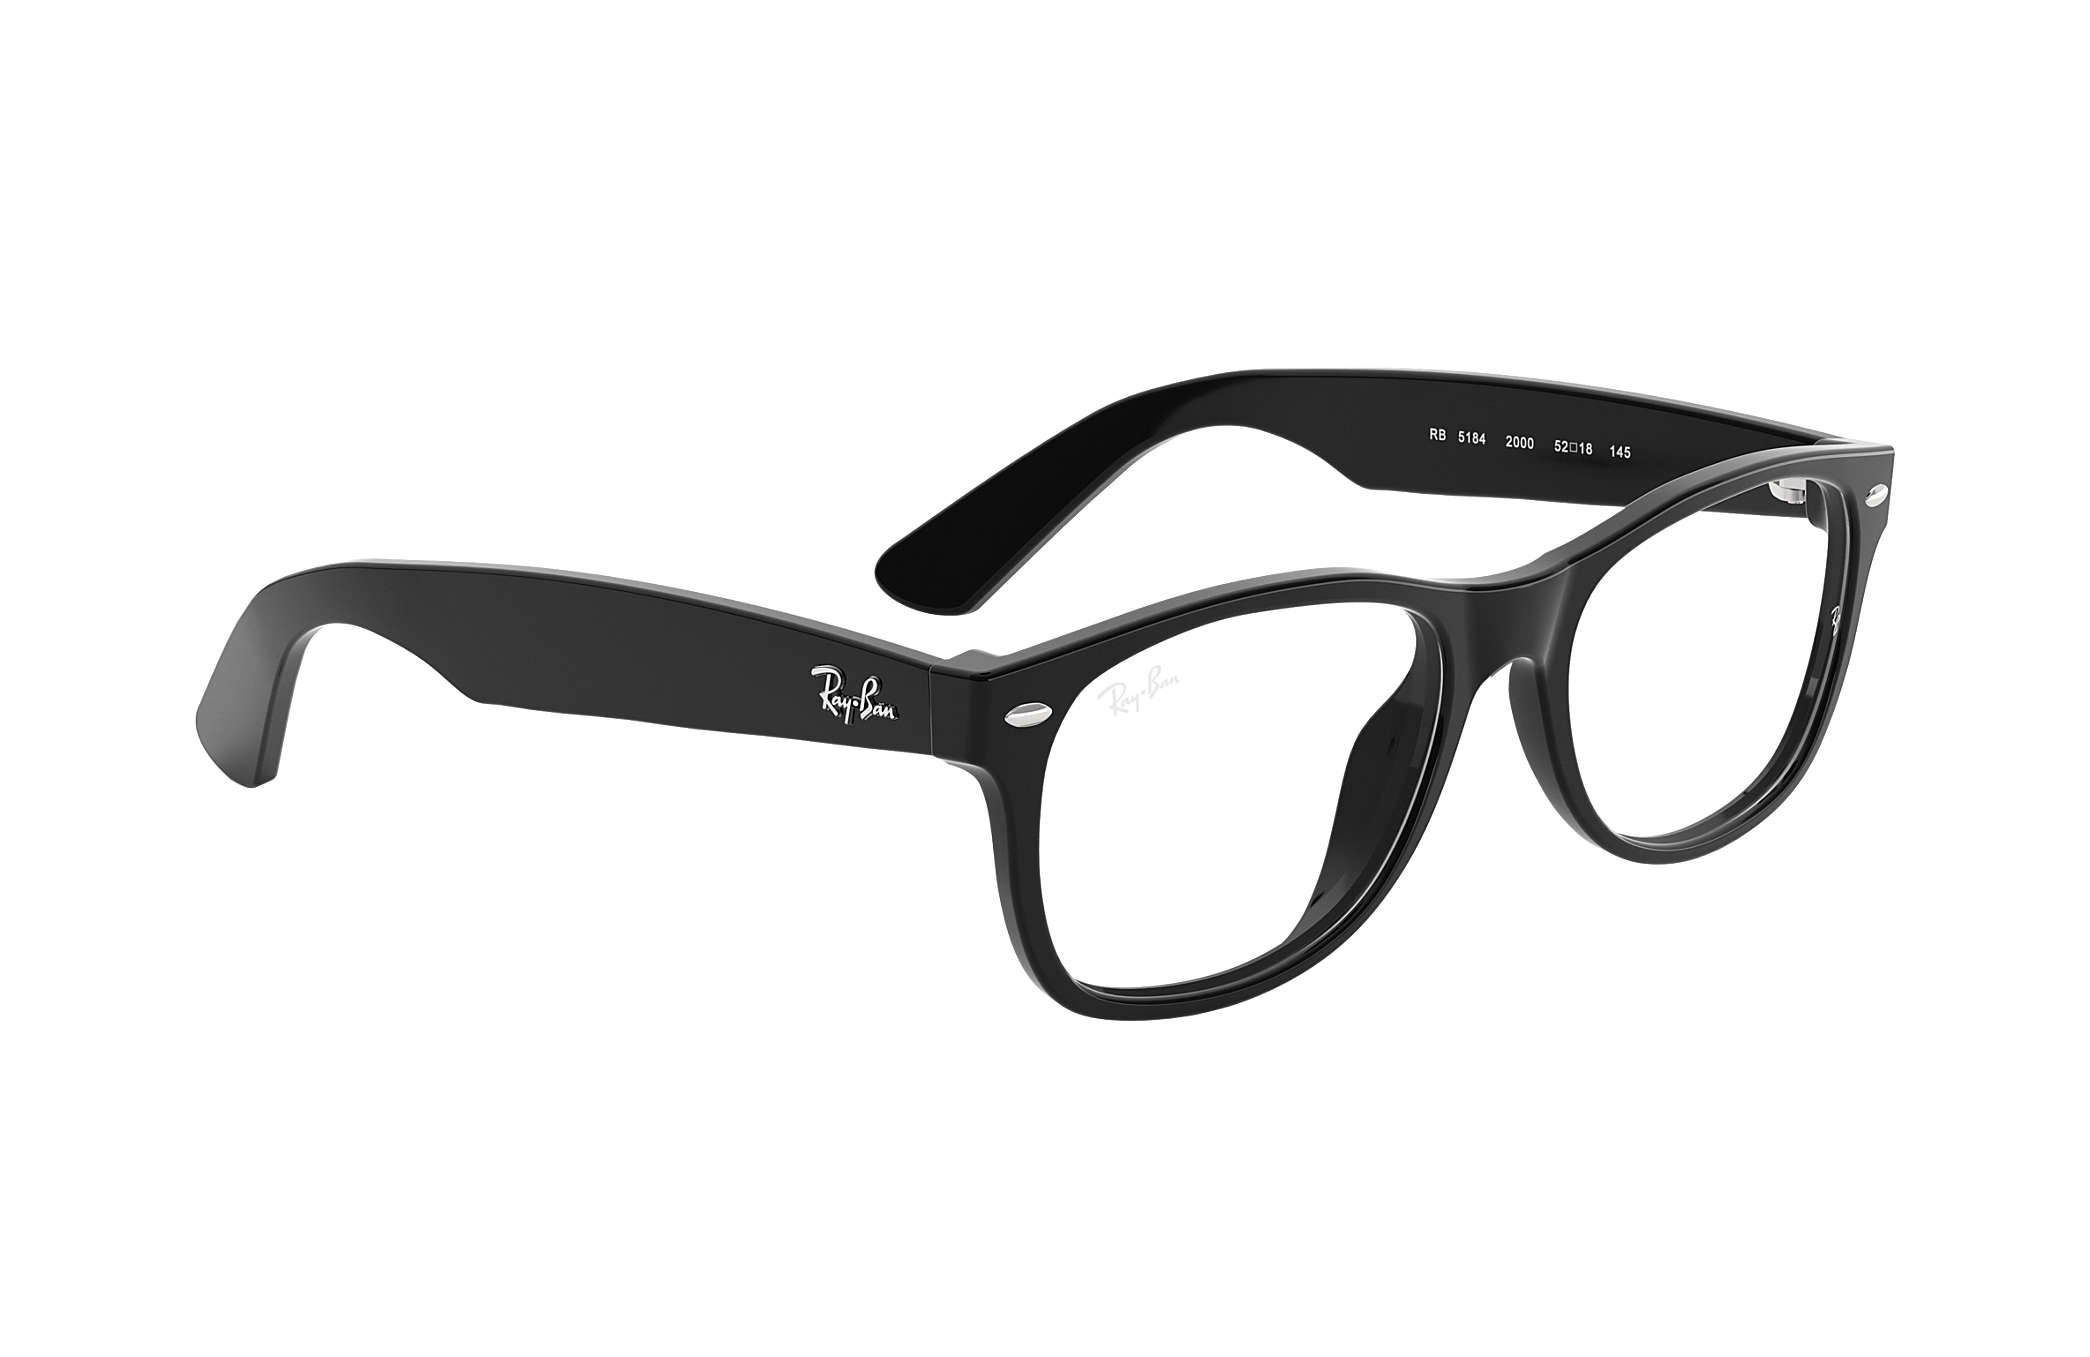 9ad44ff741 Ray-Ban prescription glasses New Wayfarer Optics RB5184 Black ...